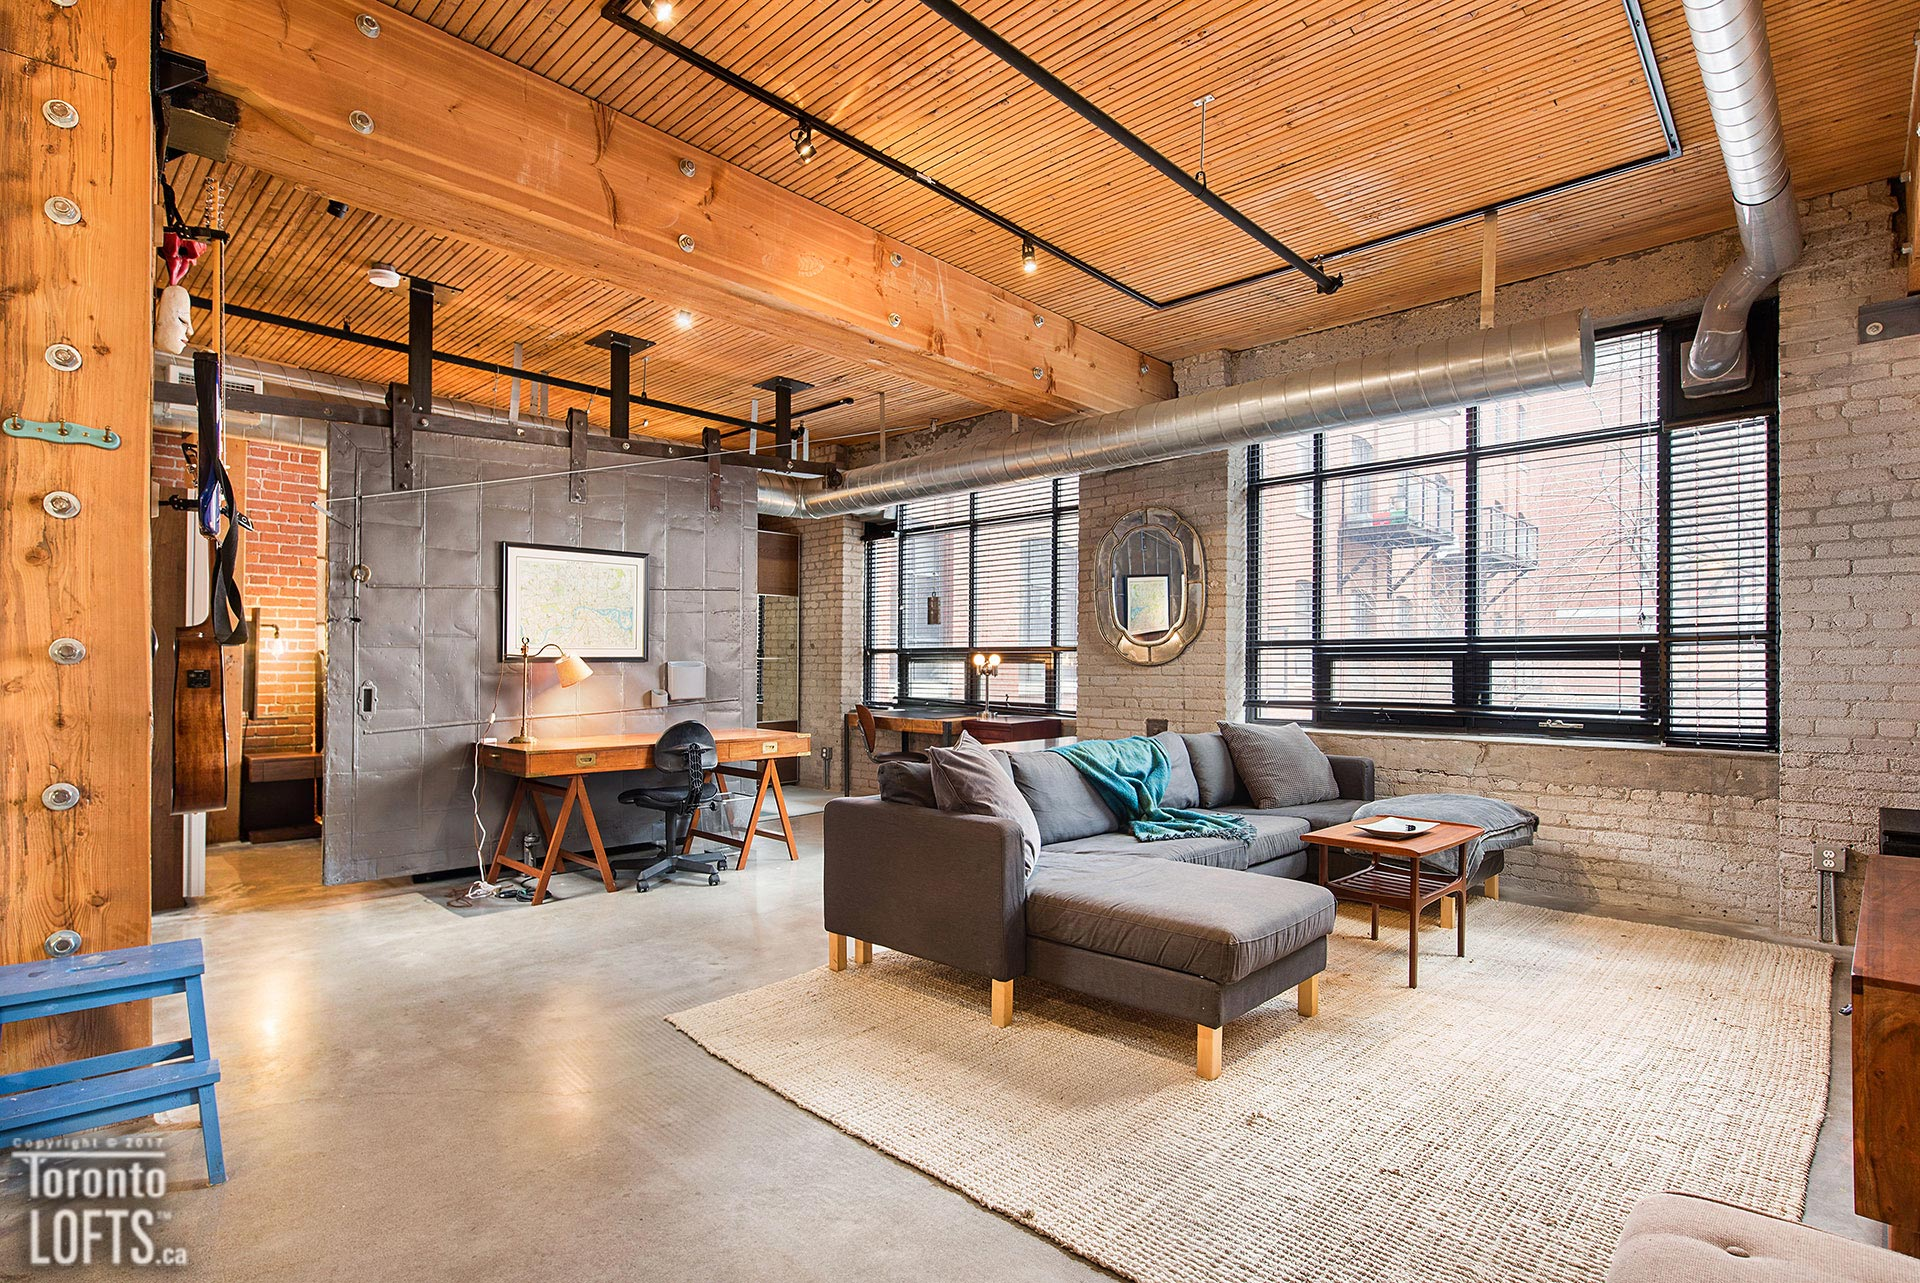 Broadview Lofts-68 Broadview Ave #201